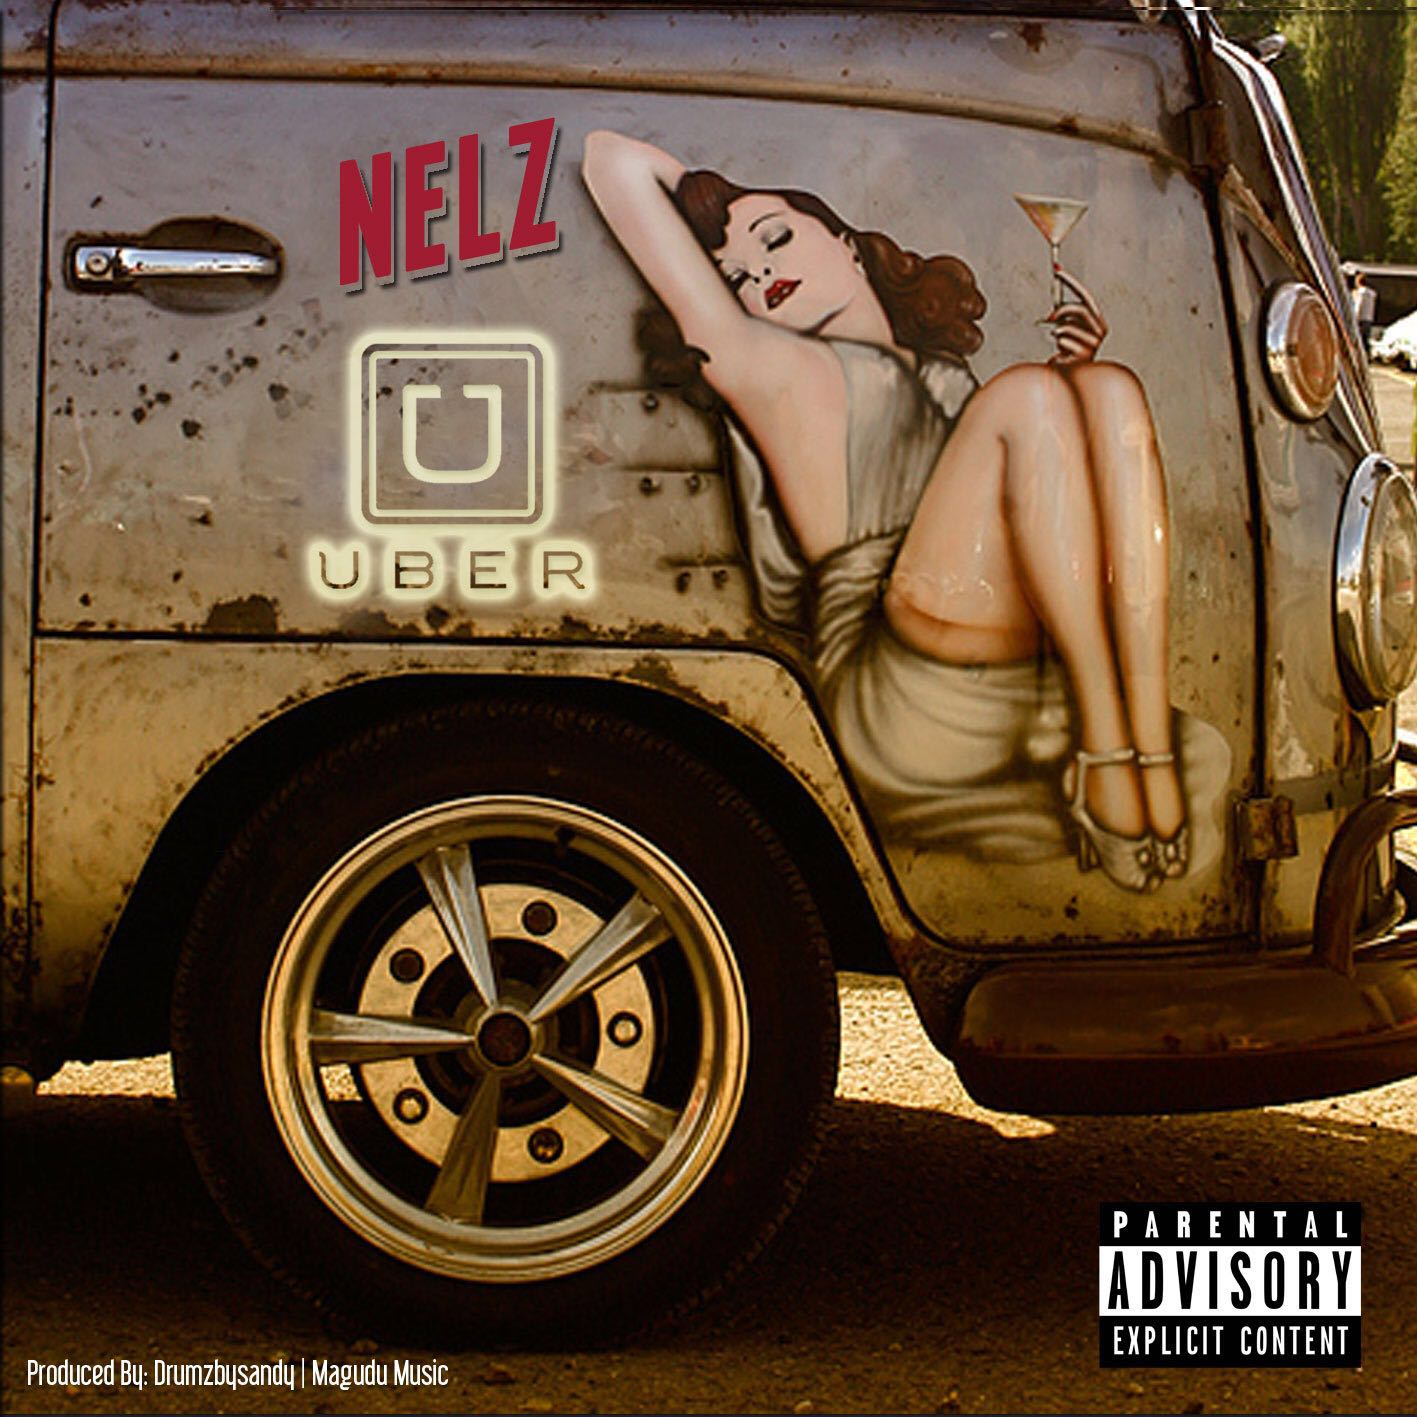 Listen To Nelz's Jumping 'Uber' Joint. IMG 20160209 WA0001